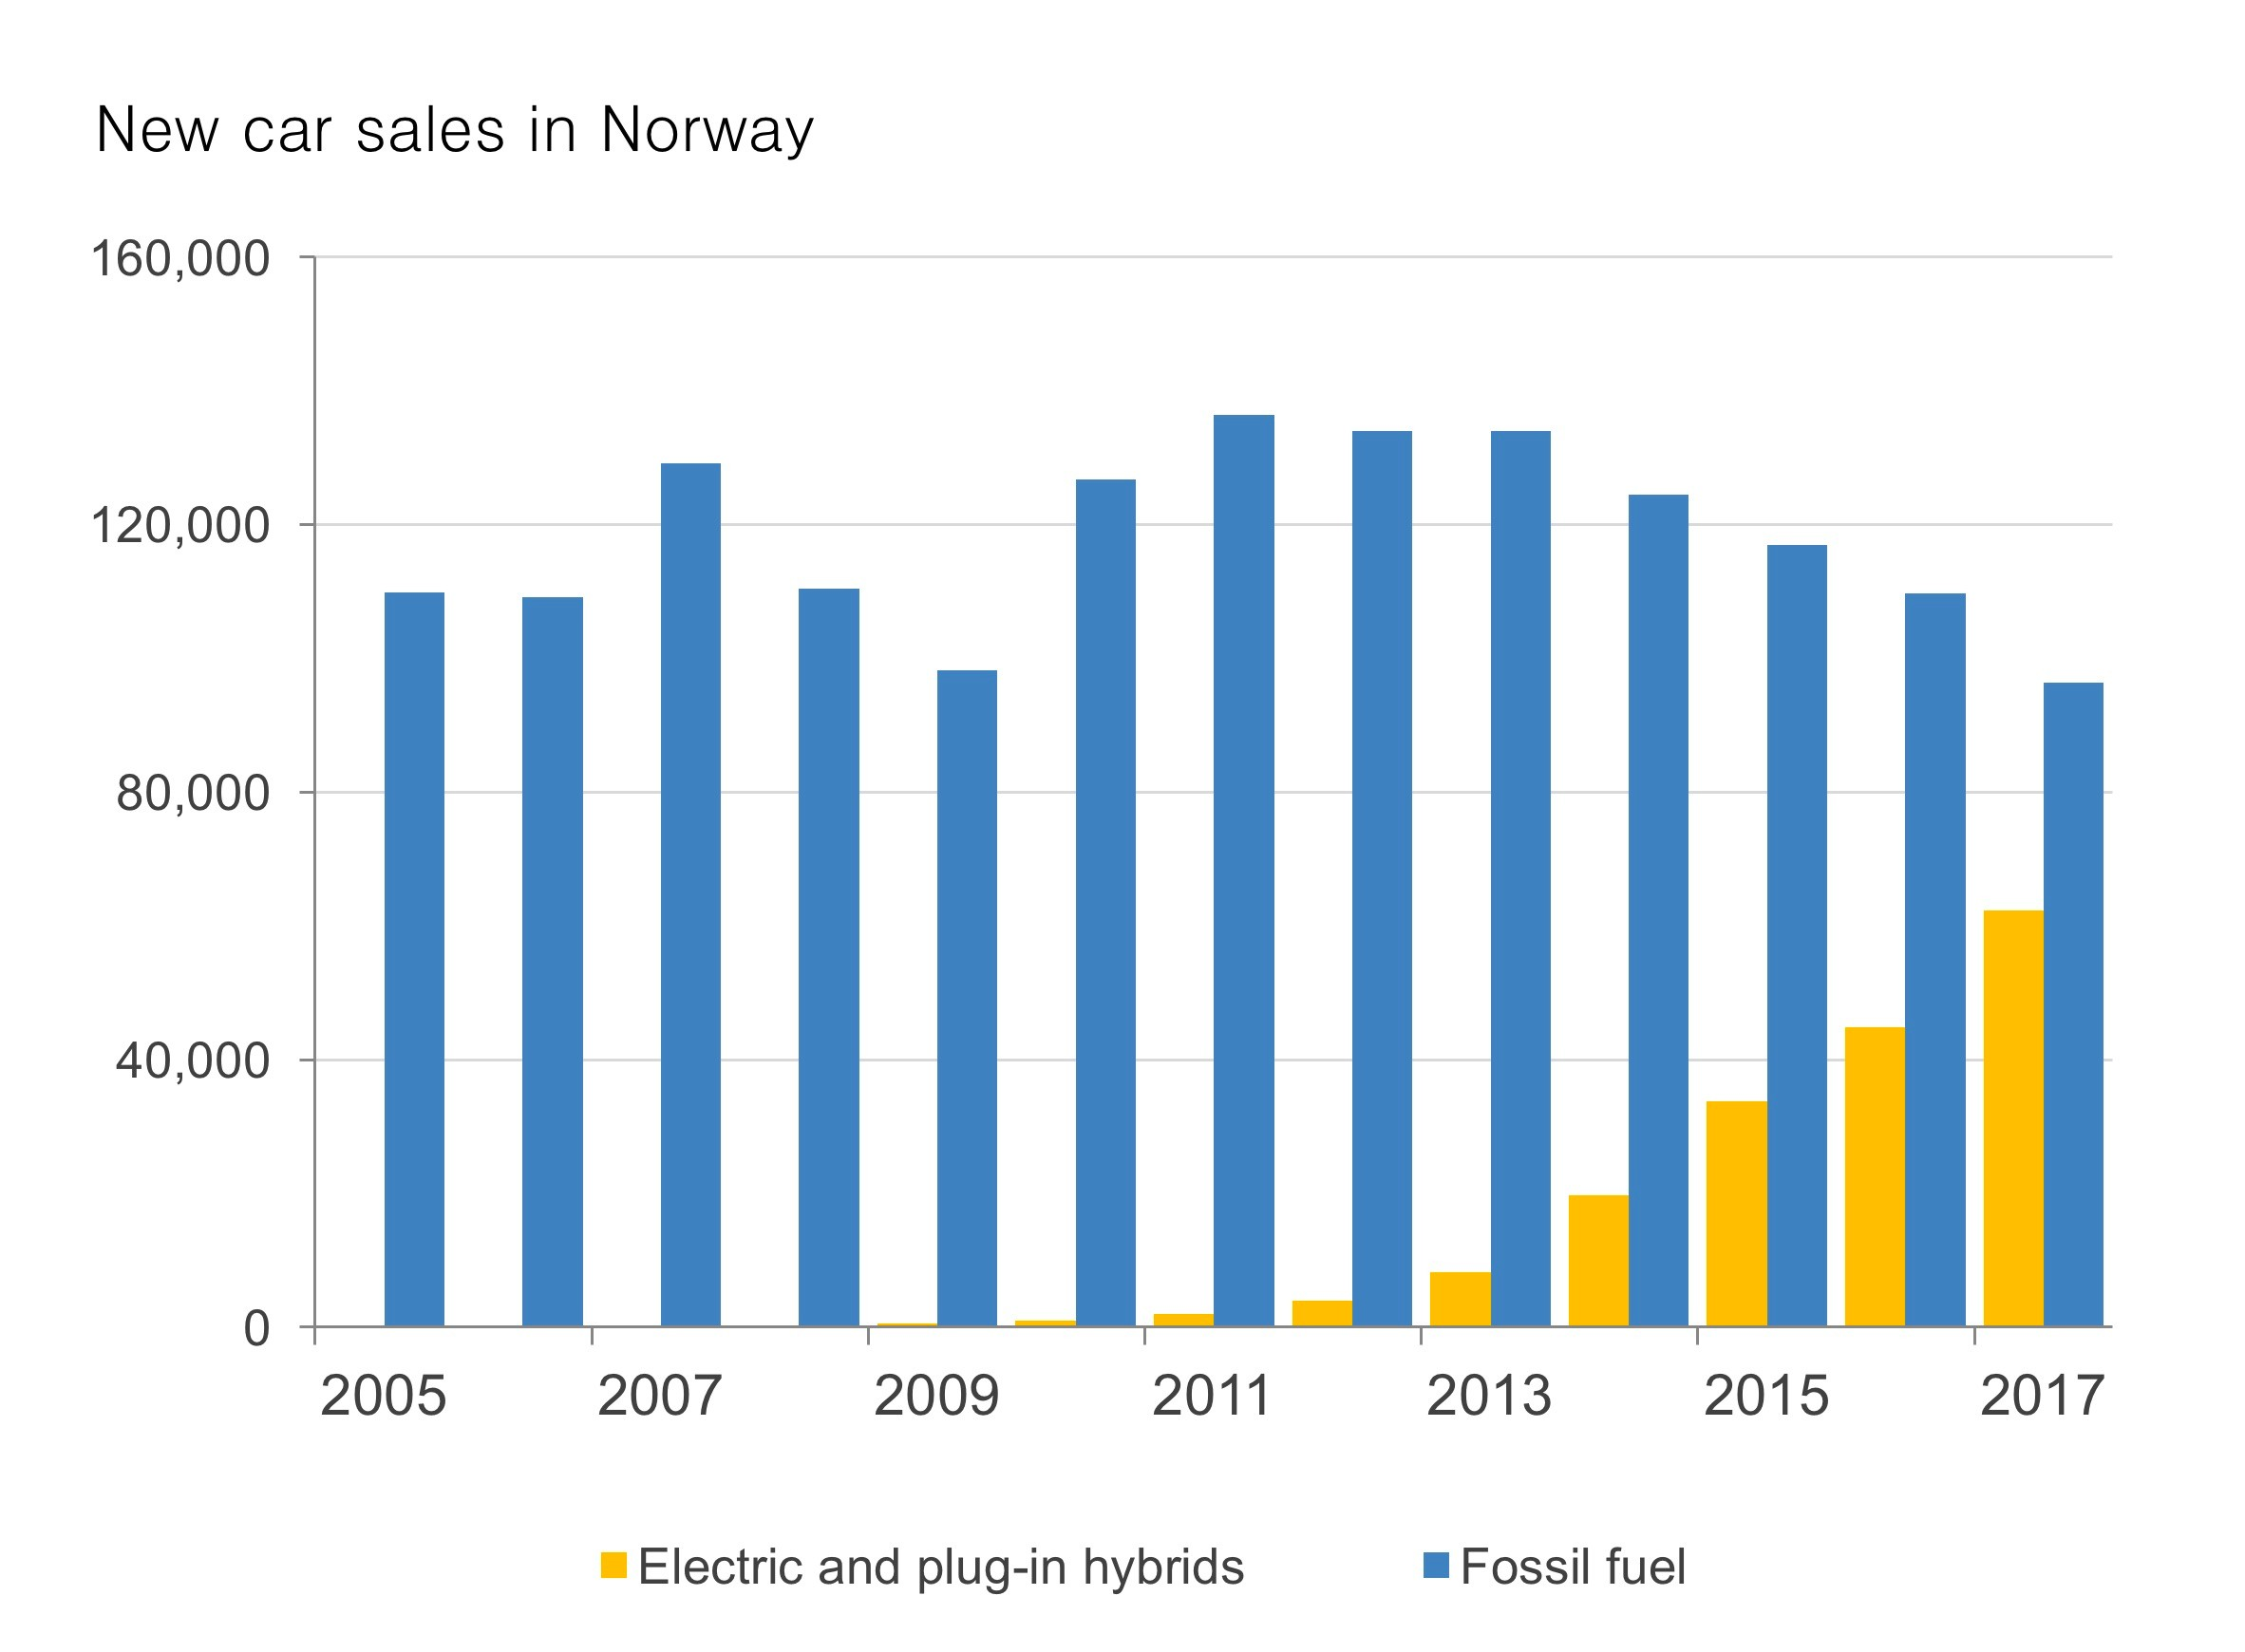 Norway is the top country in the world as regards market share. EV and plug-in hybrids reached a 39% market share in 2017.